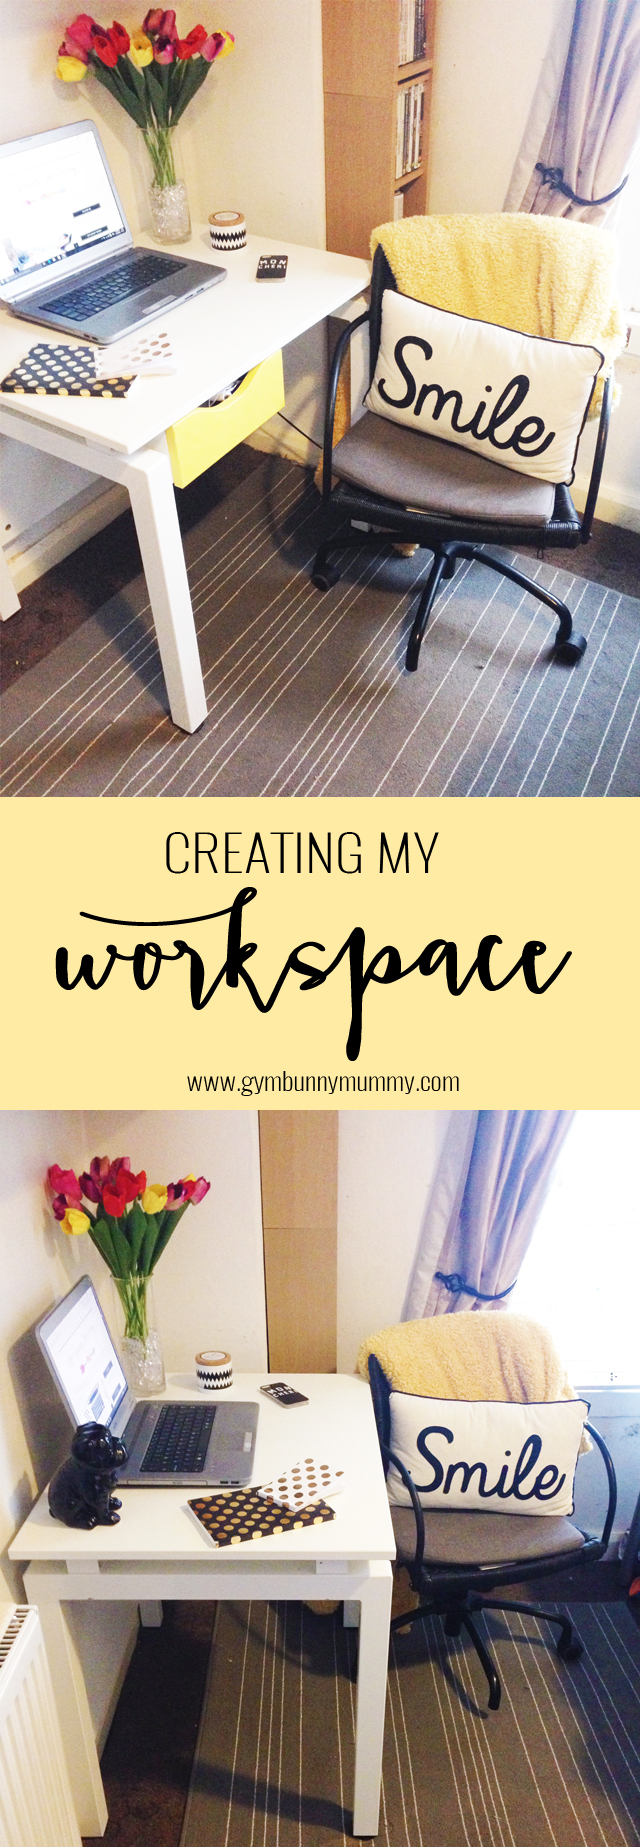 creating-blogger-workspace